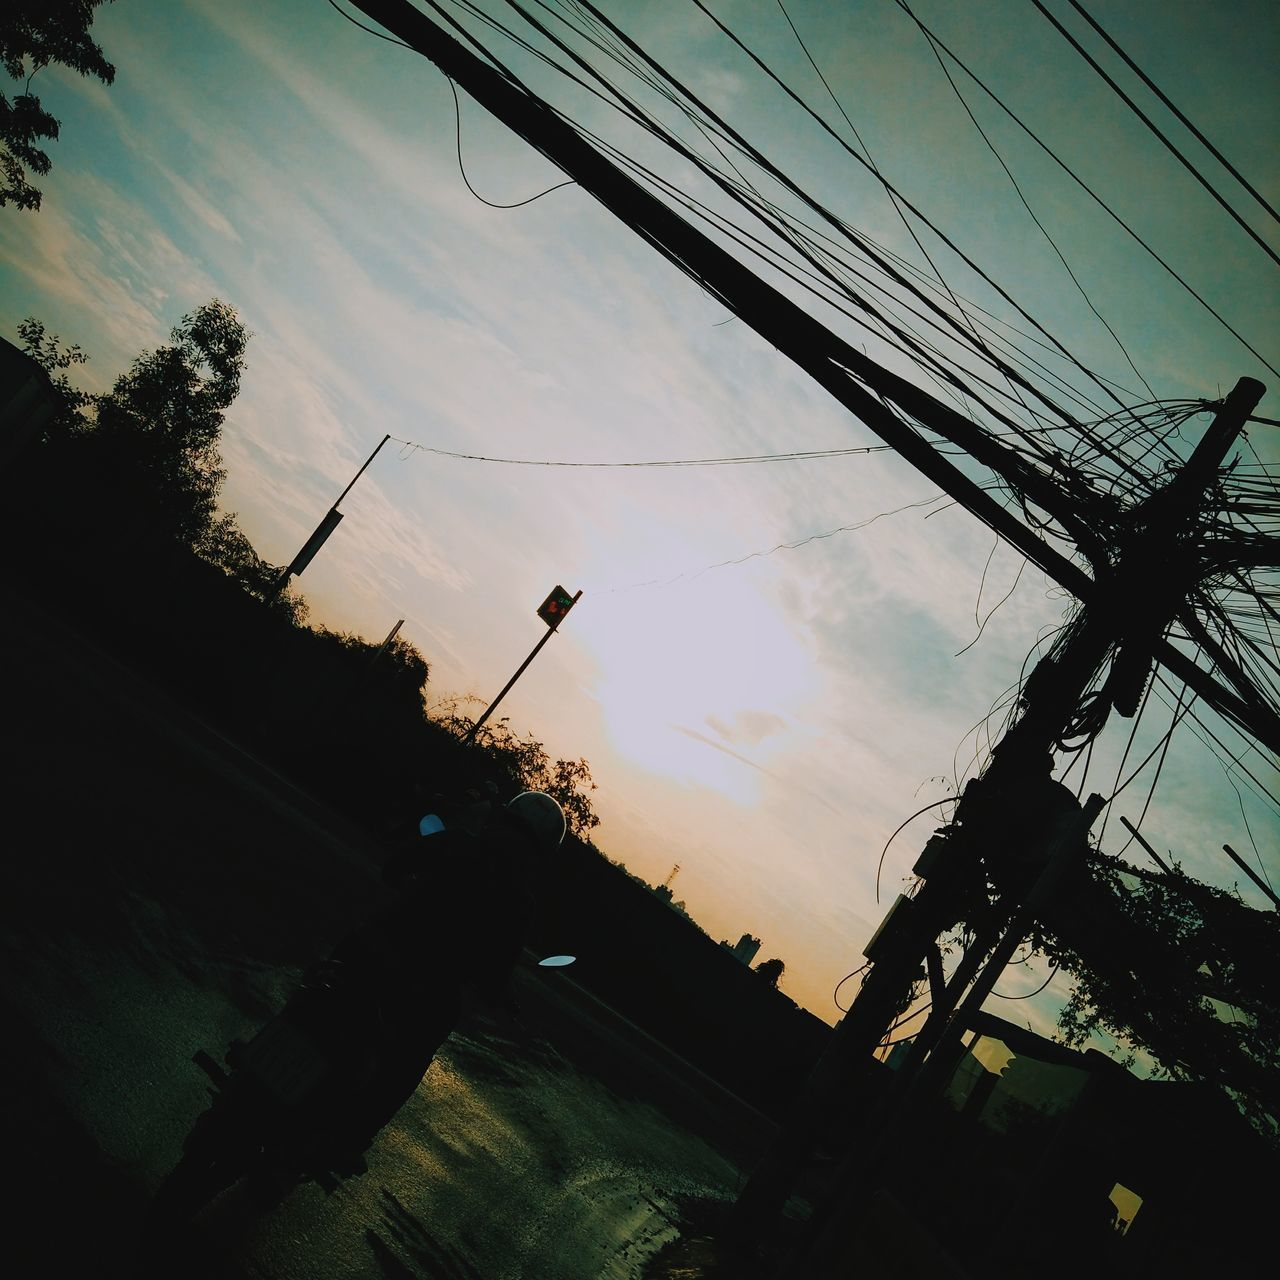 cable, sky, power line, silhouette, connection, sunset, low angle view, tree, cloud - sky, no people, electricity pylon, power supply, transportation, technology, outdoors, day, telephone line, nature, road sign, architecture